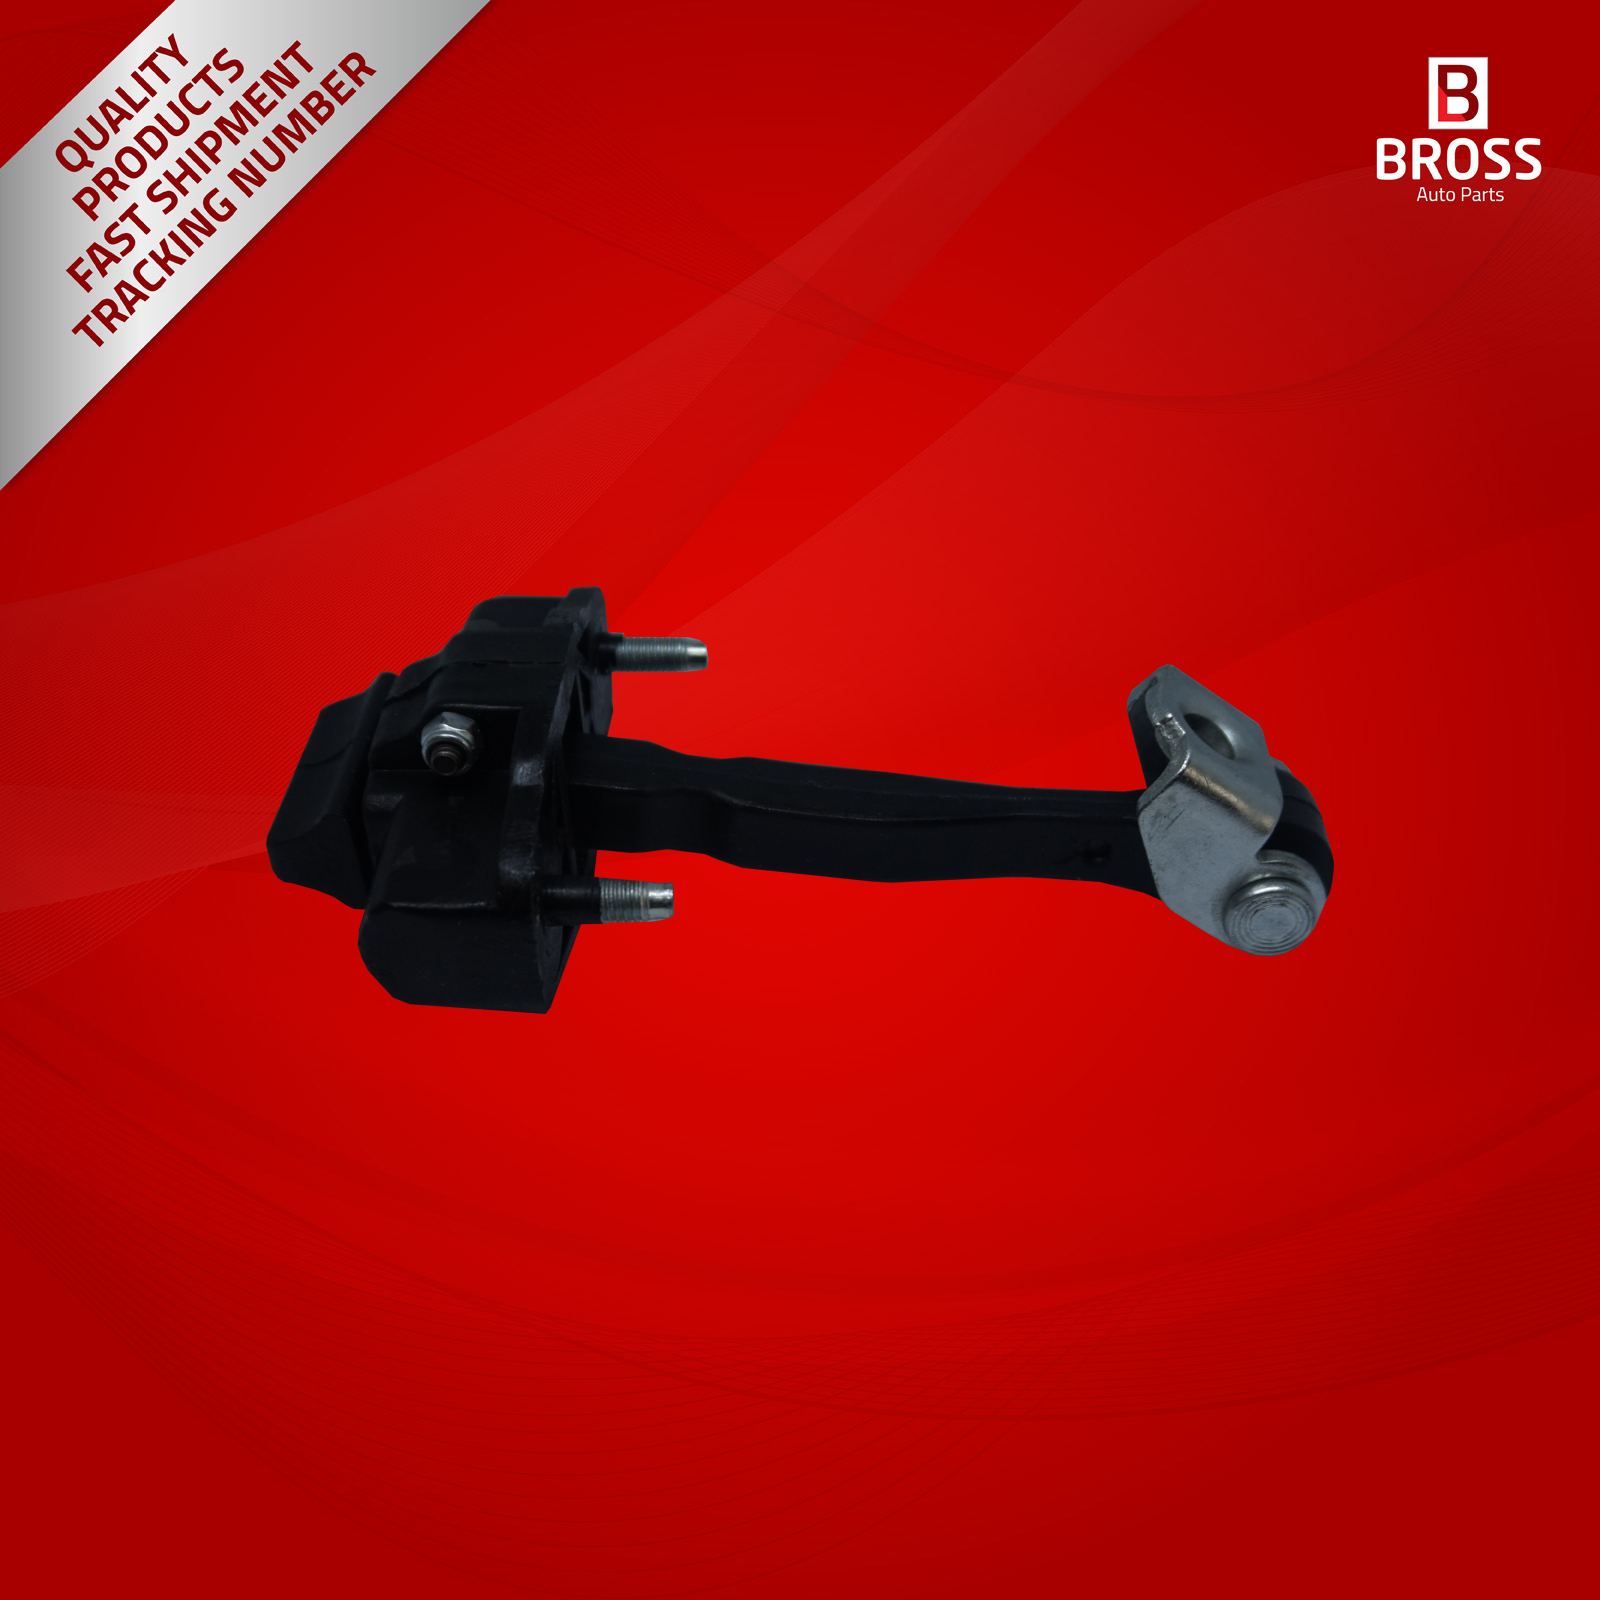 Bross Auto Parts BDP820 Front Door Hinge Stop Check Strap Limiter 51983934 for Fiat Tipo 2015 On Fiat Egea 2015 On Turkish Store|Interior Door Panels & Parts| |  - title=